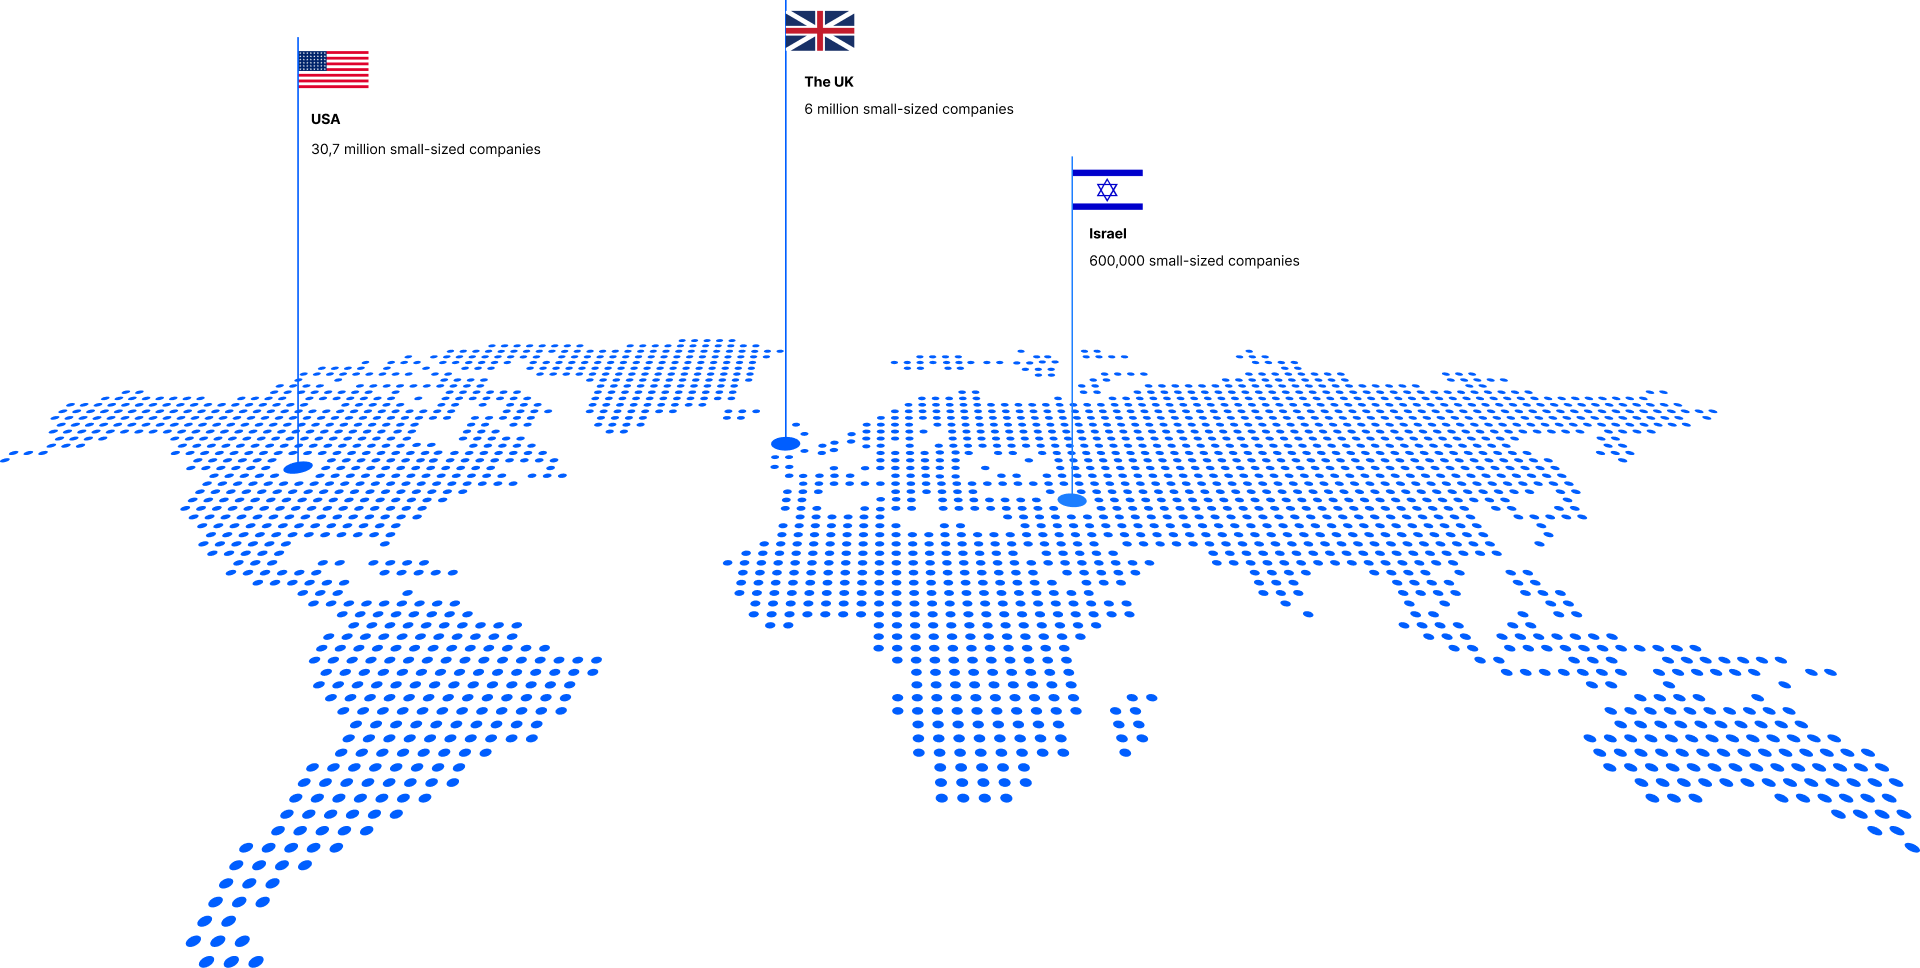 Number of small businesses in the US, the UK, Israel